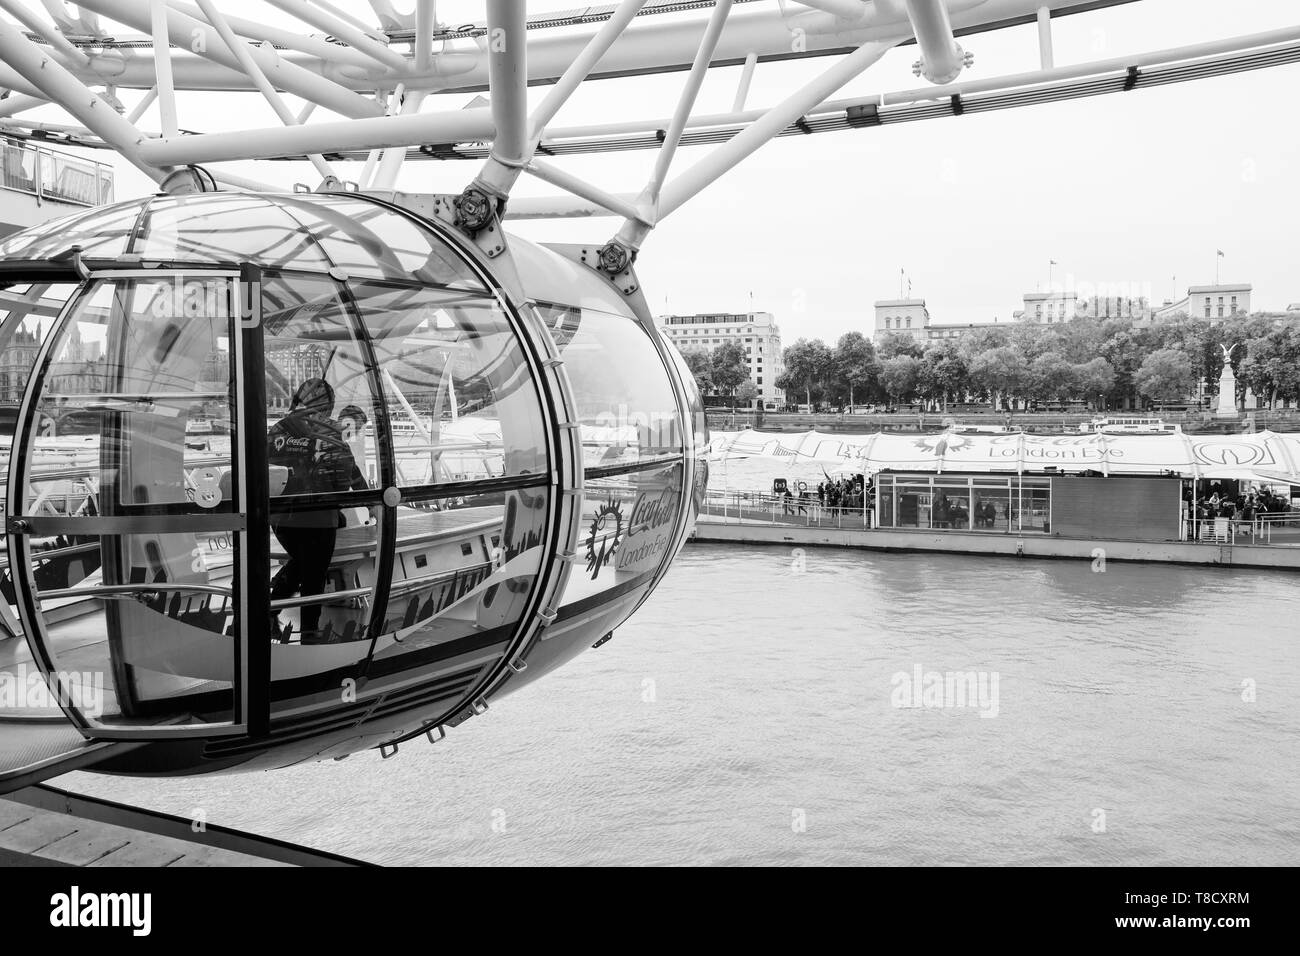 London, United Kingdom - October 31, 2017: People are in cabin of London Eye giant Ferris wheel mounted on the South Bank of River Thames in London, b - Stock Image